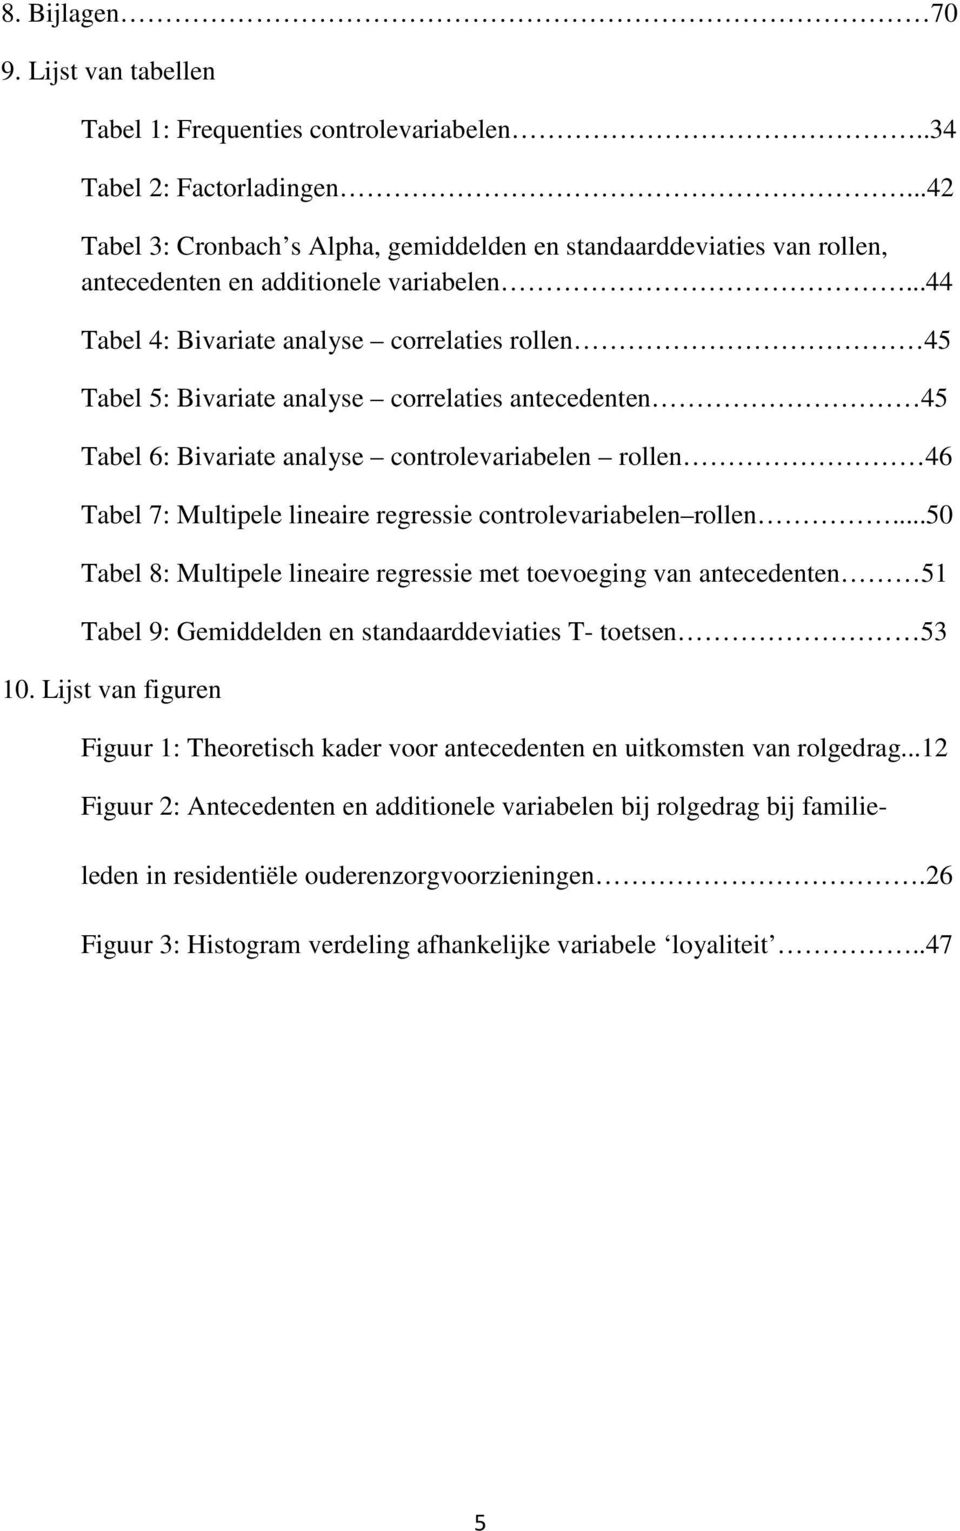 ..44 Tabel 4: Bivariate analyse correlaties rollen 45 Tabel 5: Bivariate analyse correlaties antecedenten 45 Tabel 6: Bivariate analyse controlevariabelen rollen 46 Tabel 7: Multipele lineaire